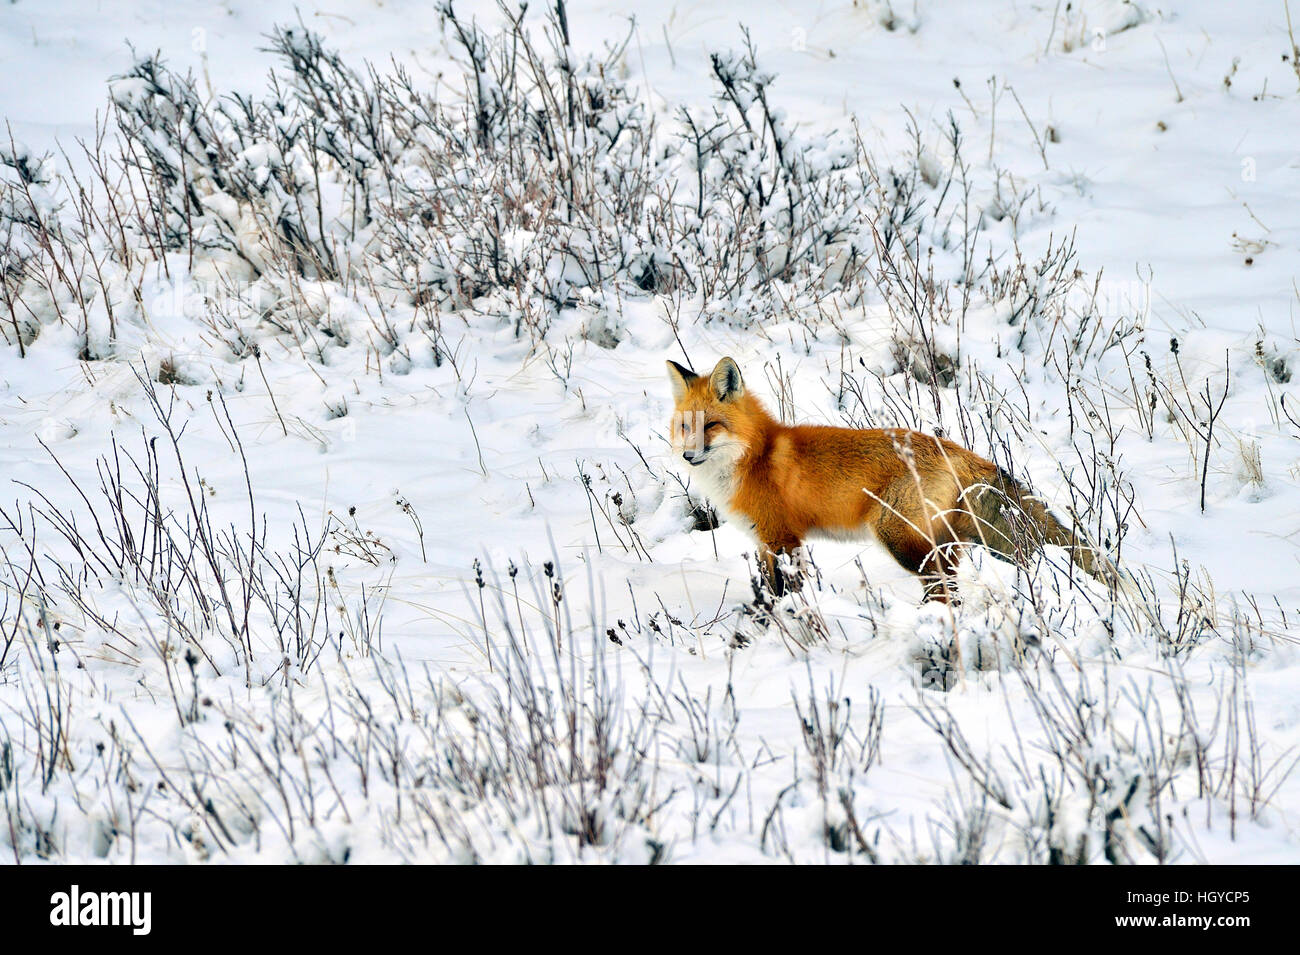 A red fox 'Vulpes vulpes';  out hunting in the winter snow in Alberta Canada - Stock Image